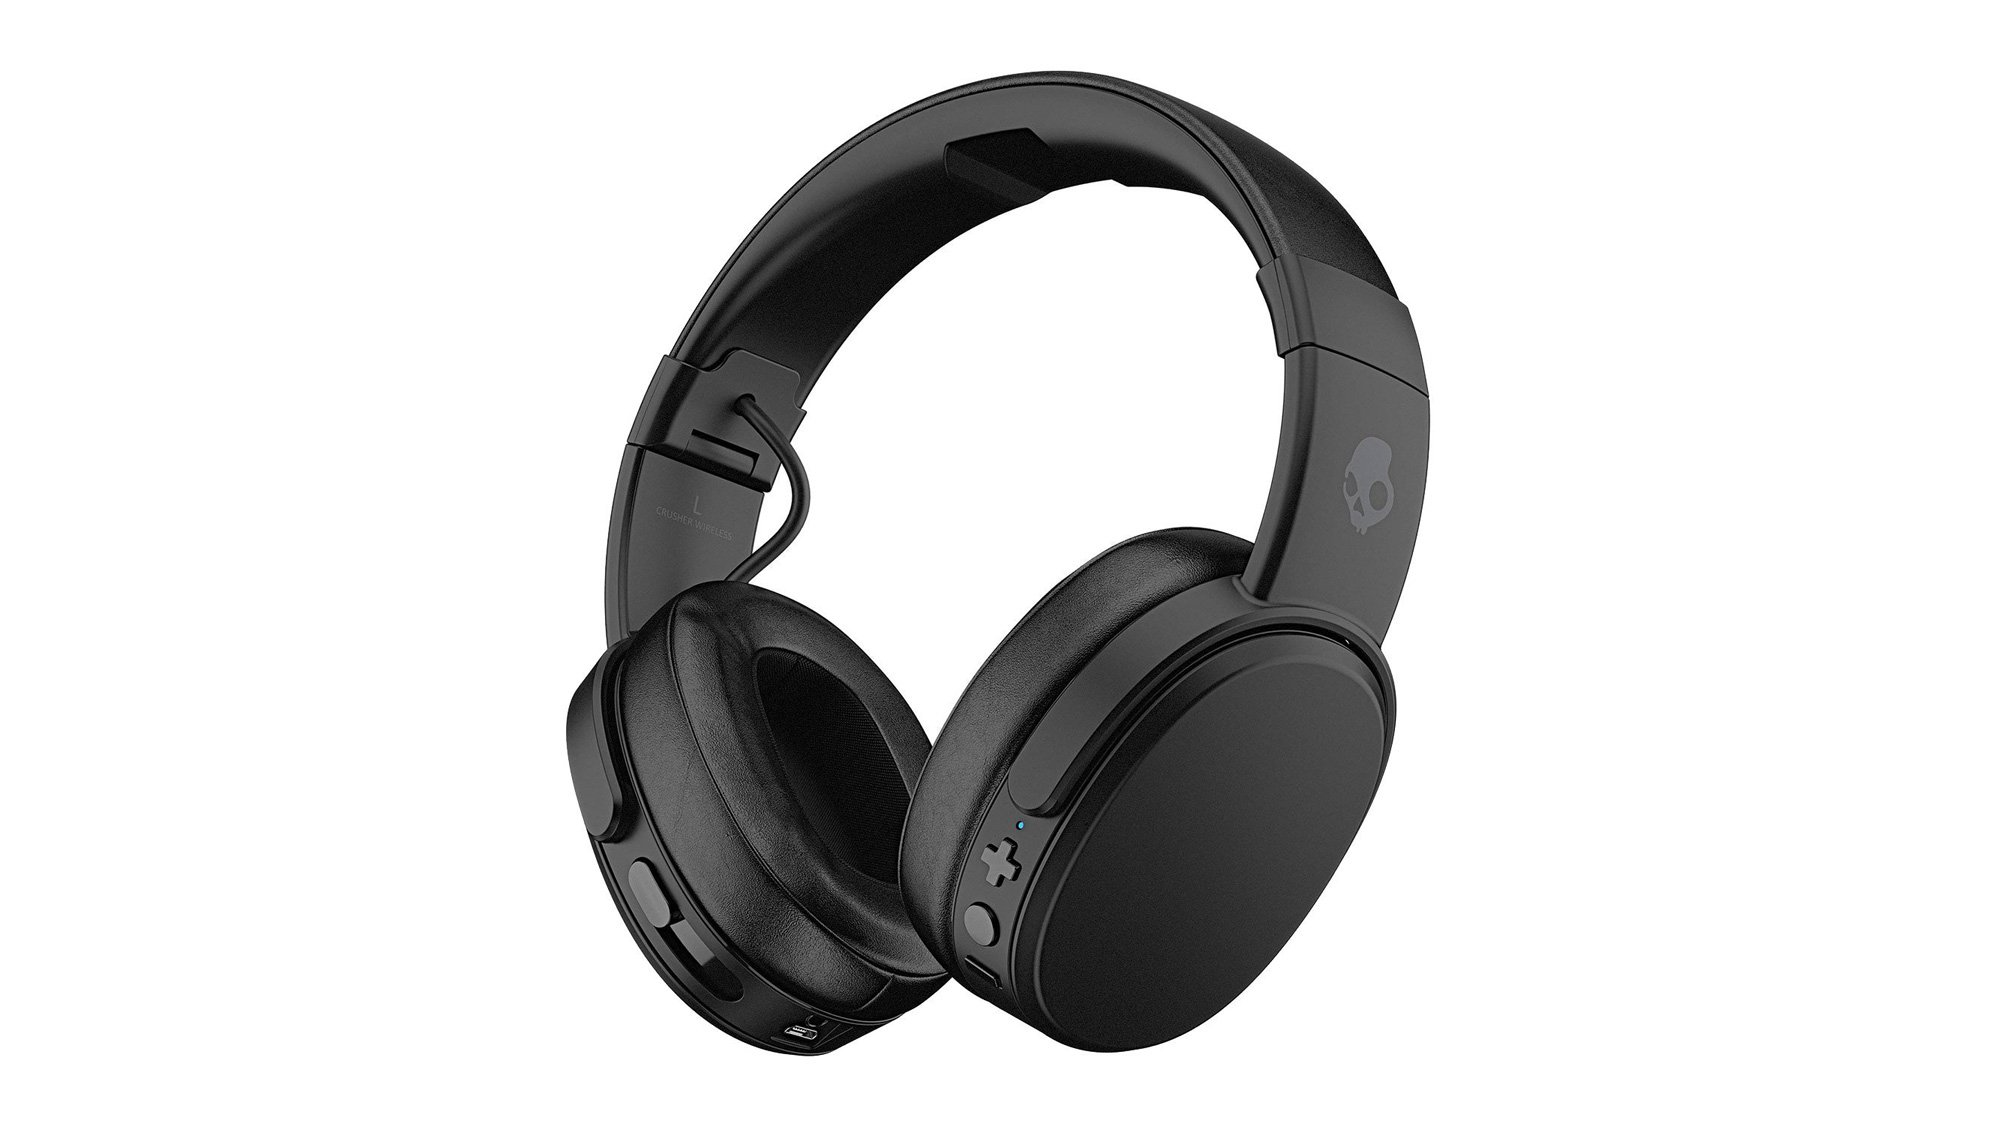 If you re looking for over-the-ear Bluetooth headphones with a lot of bass 8b84c43254c9c